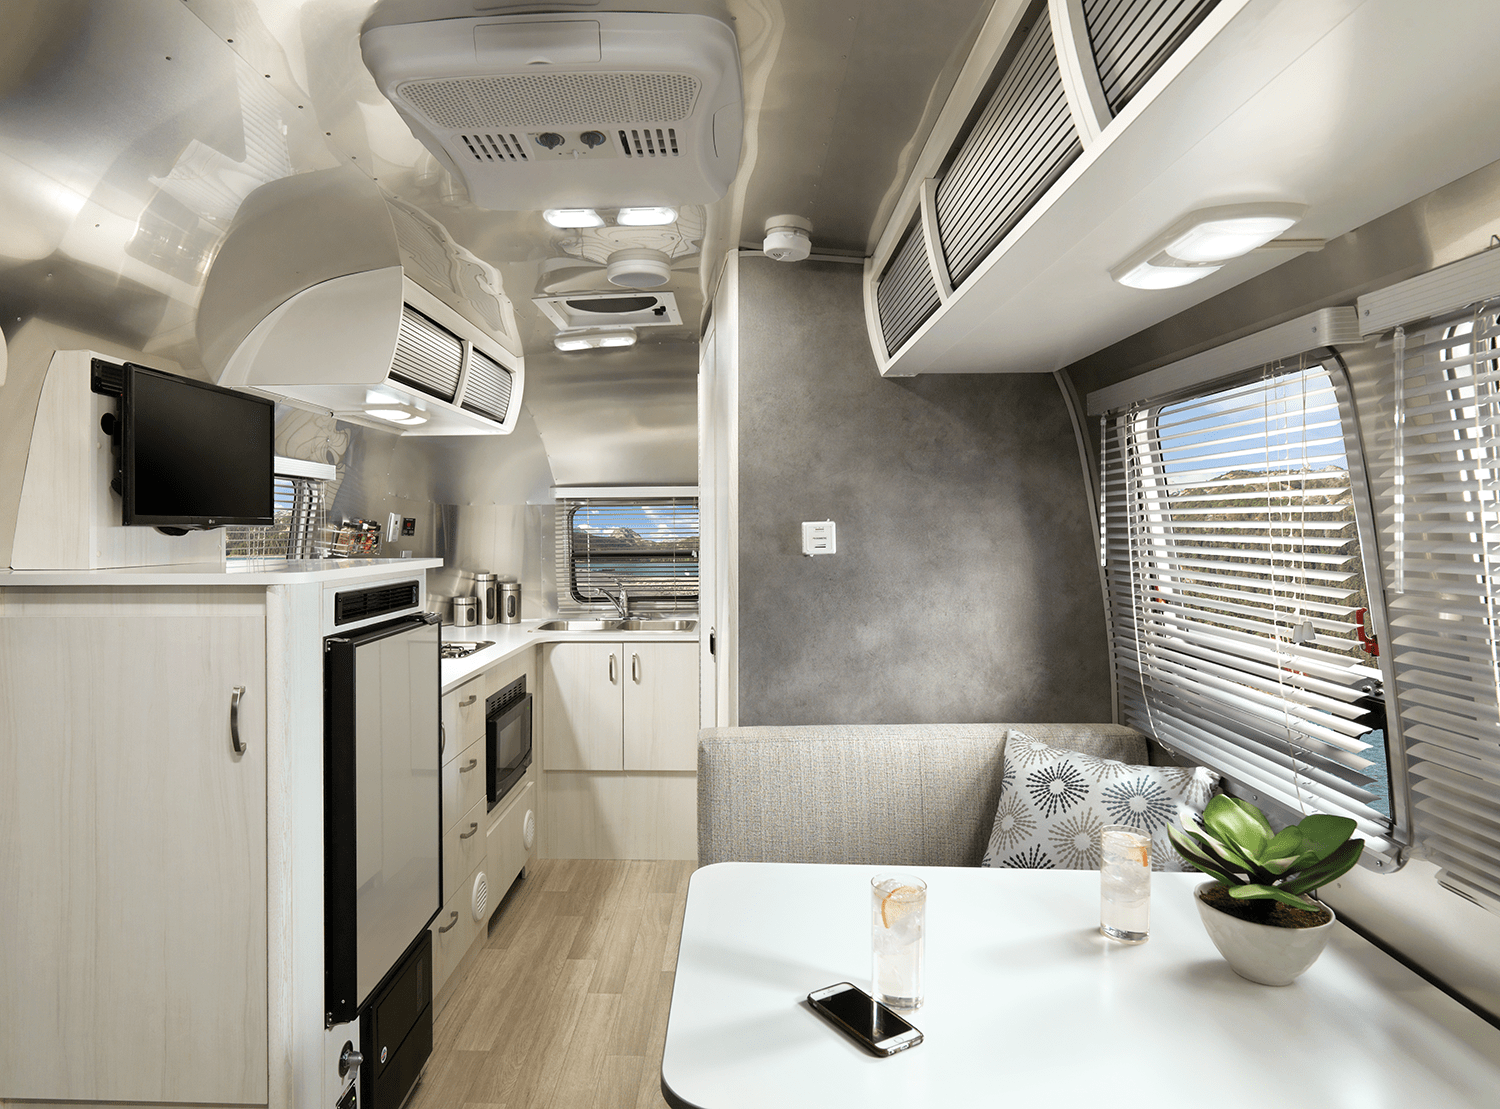 The Entire 2021 Airstream Bambi Line Up (with YouTube Video Tours)